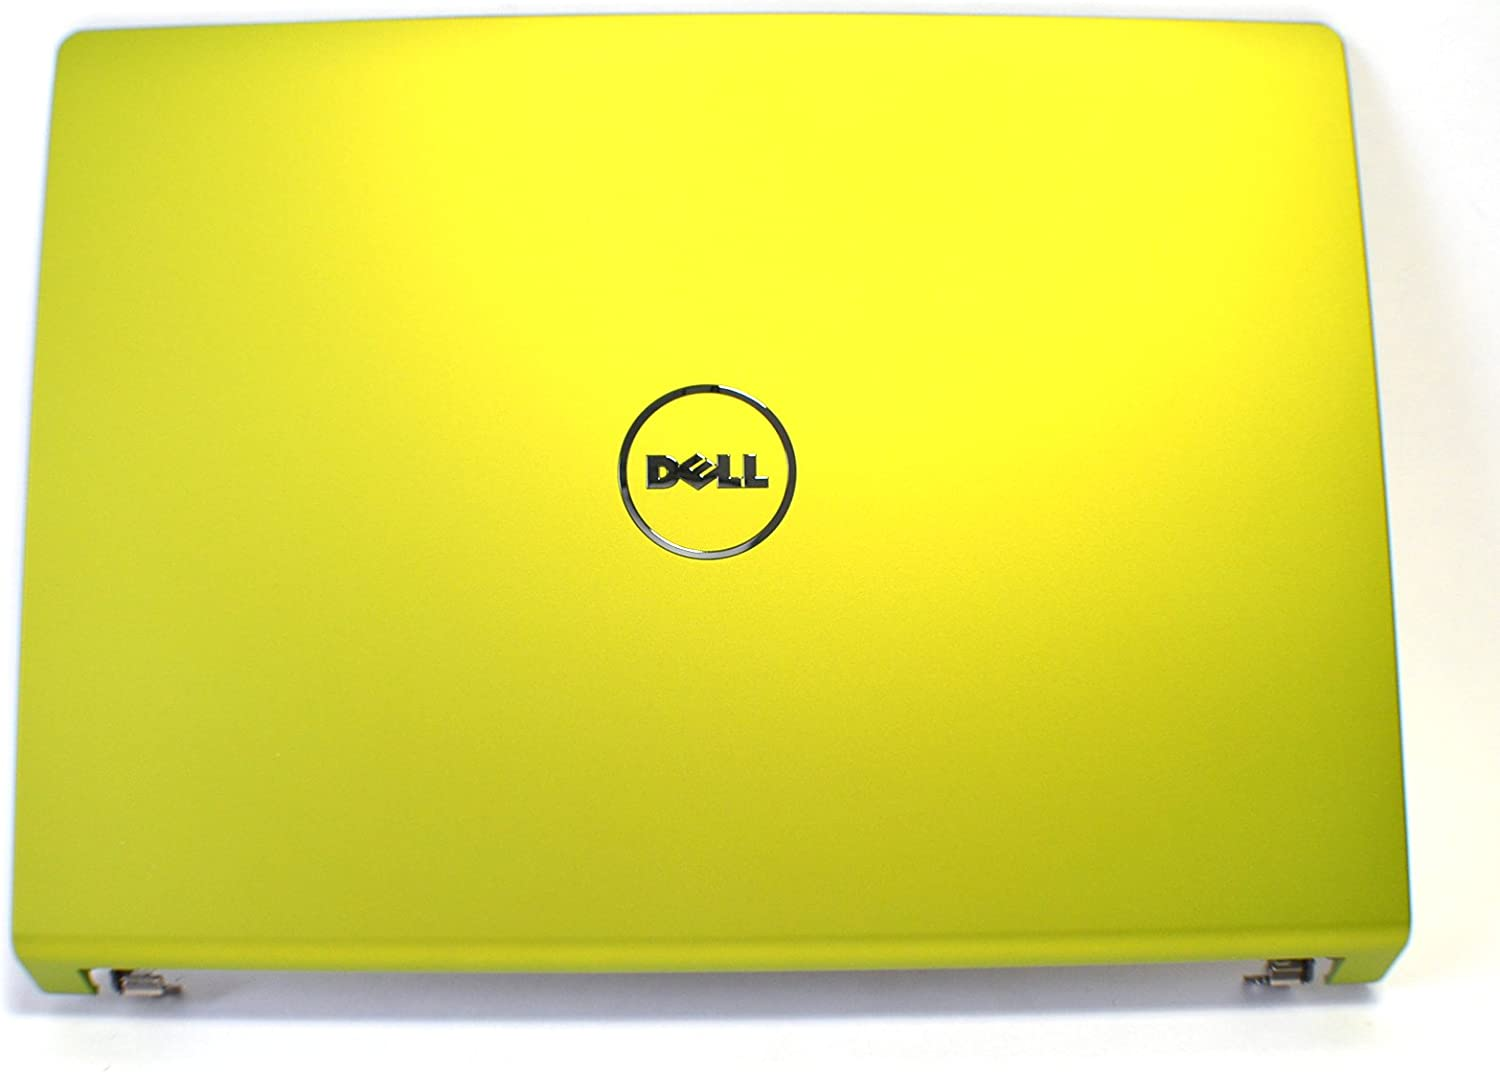 Dell New OEM Studio 15 1535 1536 1537 LCD Back Lid Top Cover Green P619X N470H Power Button WiFi Monitor Display Panel Rear Screen